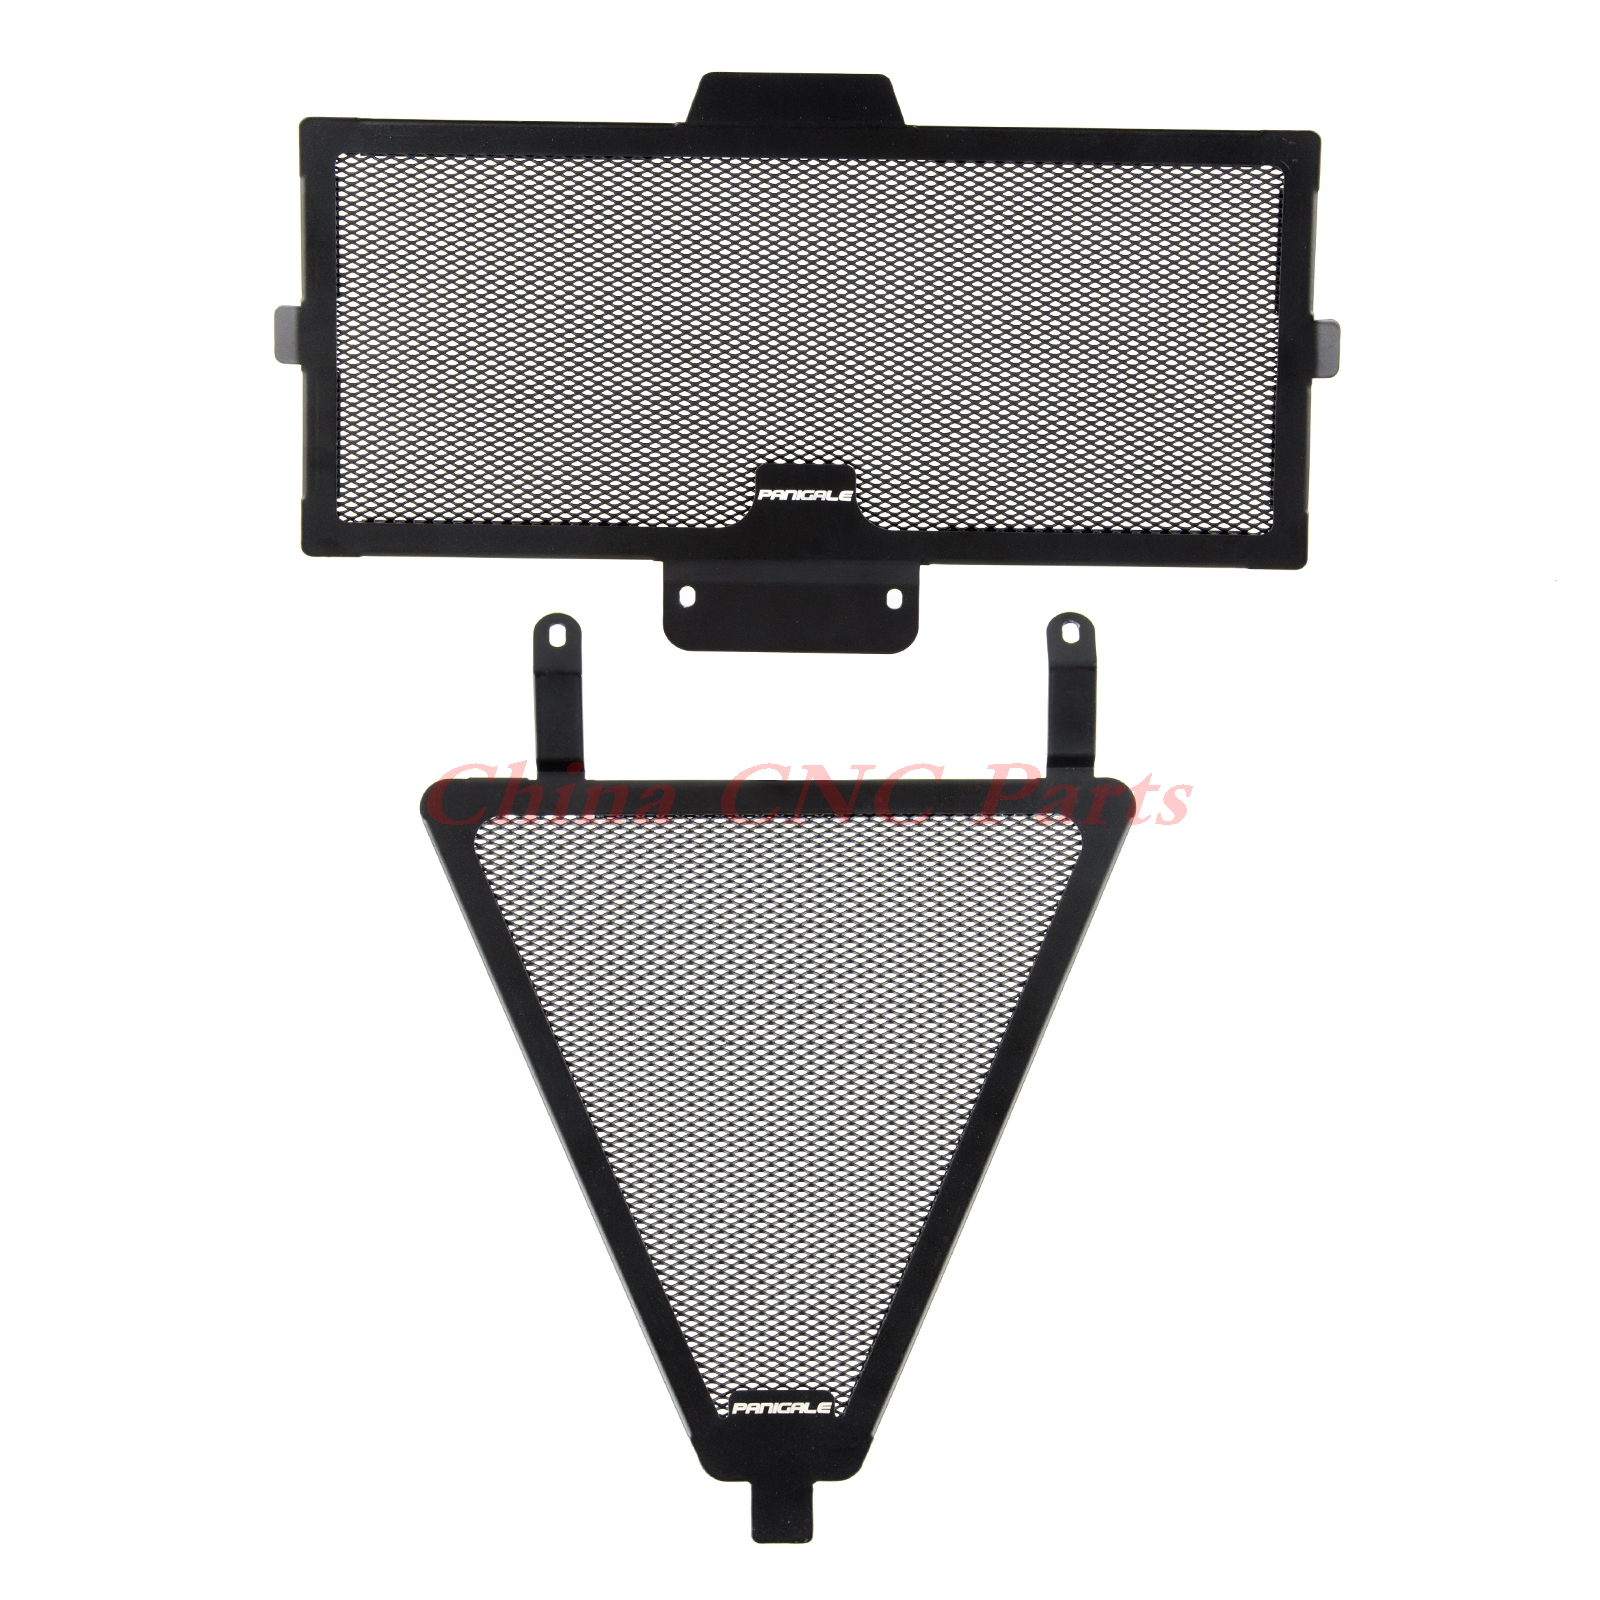 NICECNC Motorcycle Grille Radiator Cover Oil Water Cooler For Ducati 899 959 1199 1299 Panigale R/S 2013-2017